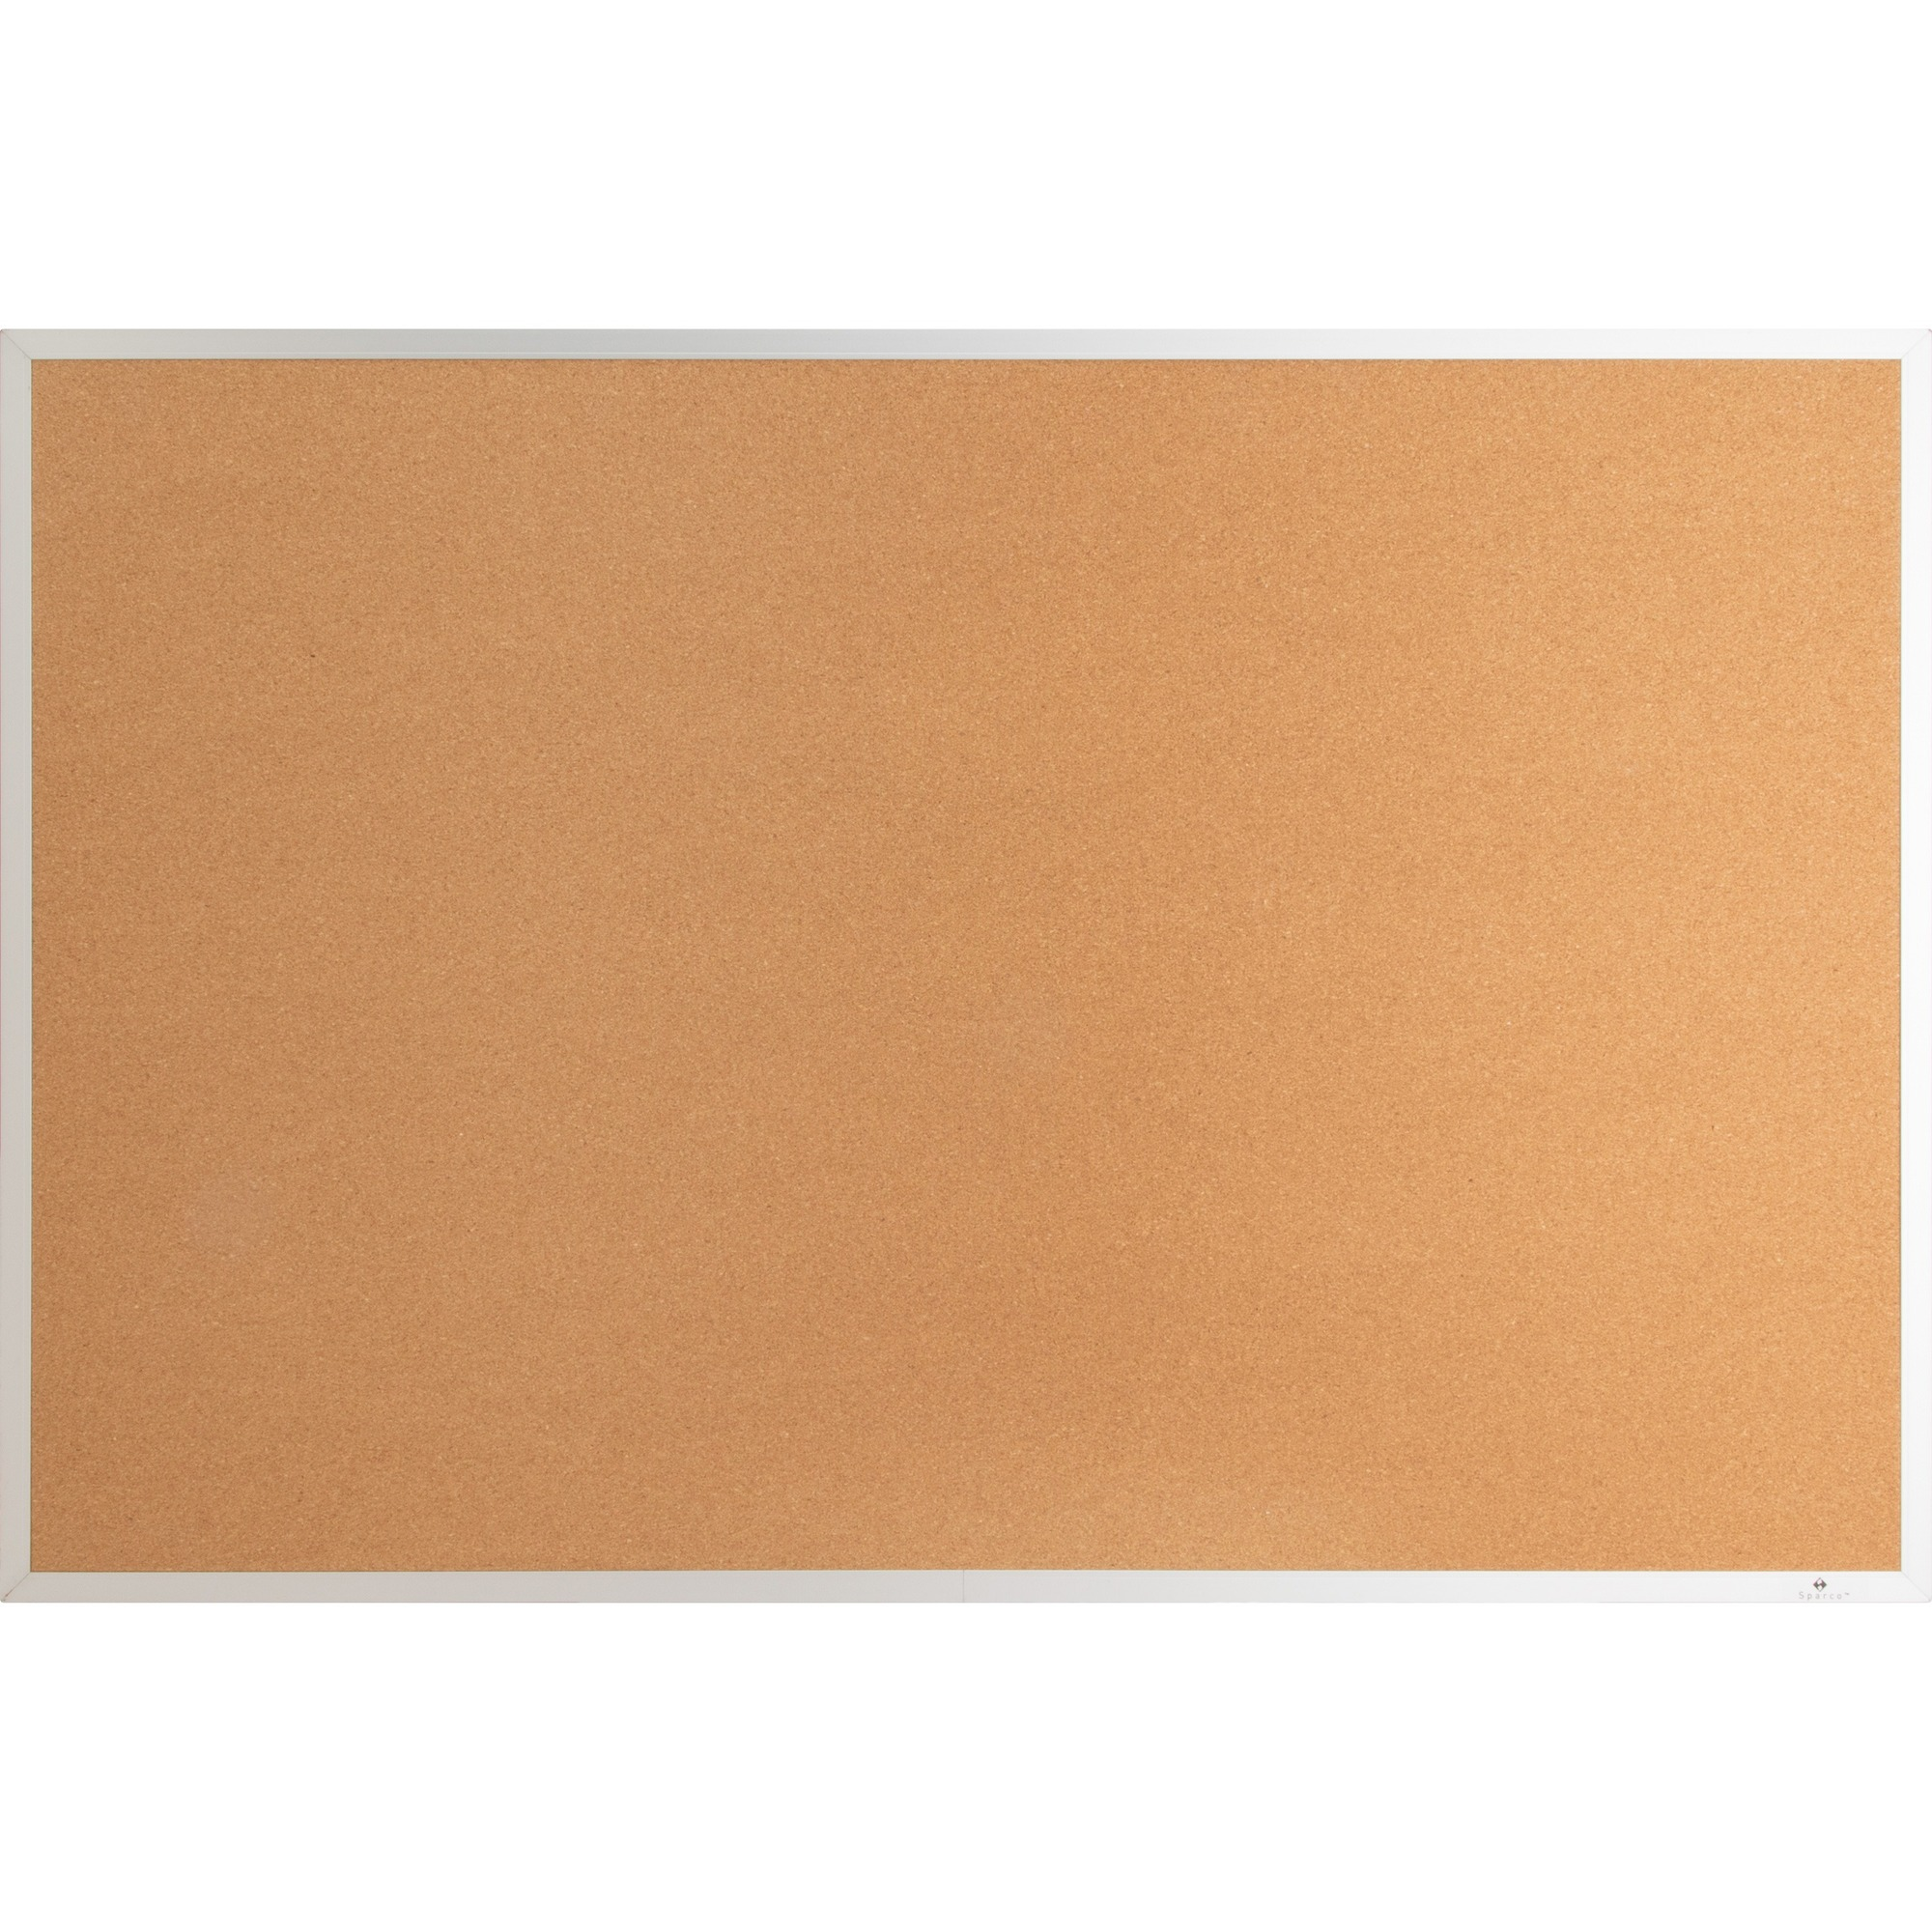 Lorell Aluminum Frame Cork Board - 18 Height X 24 Width - Cork Surface - Long Lasting, Warp Resistant - Silver Aluminum Frame - 1 Each